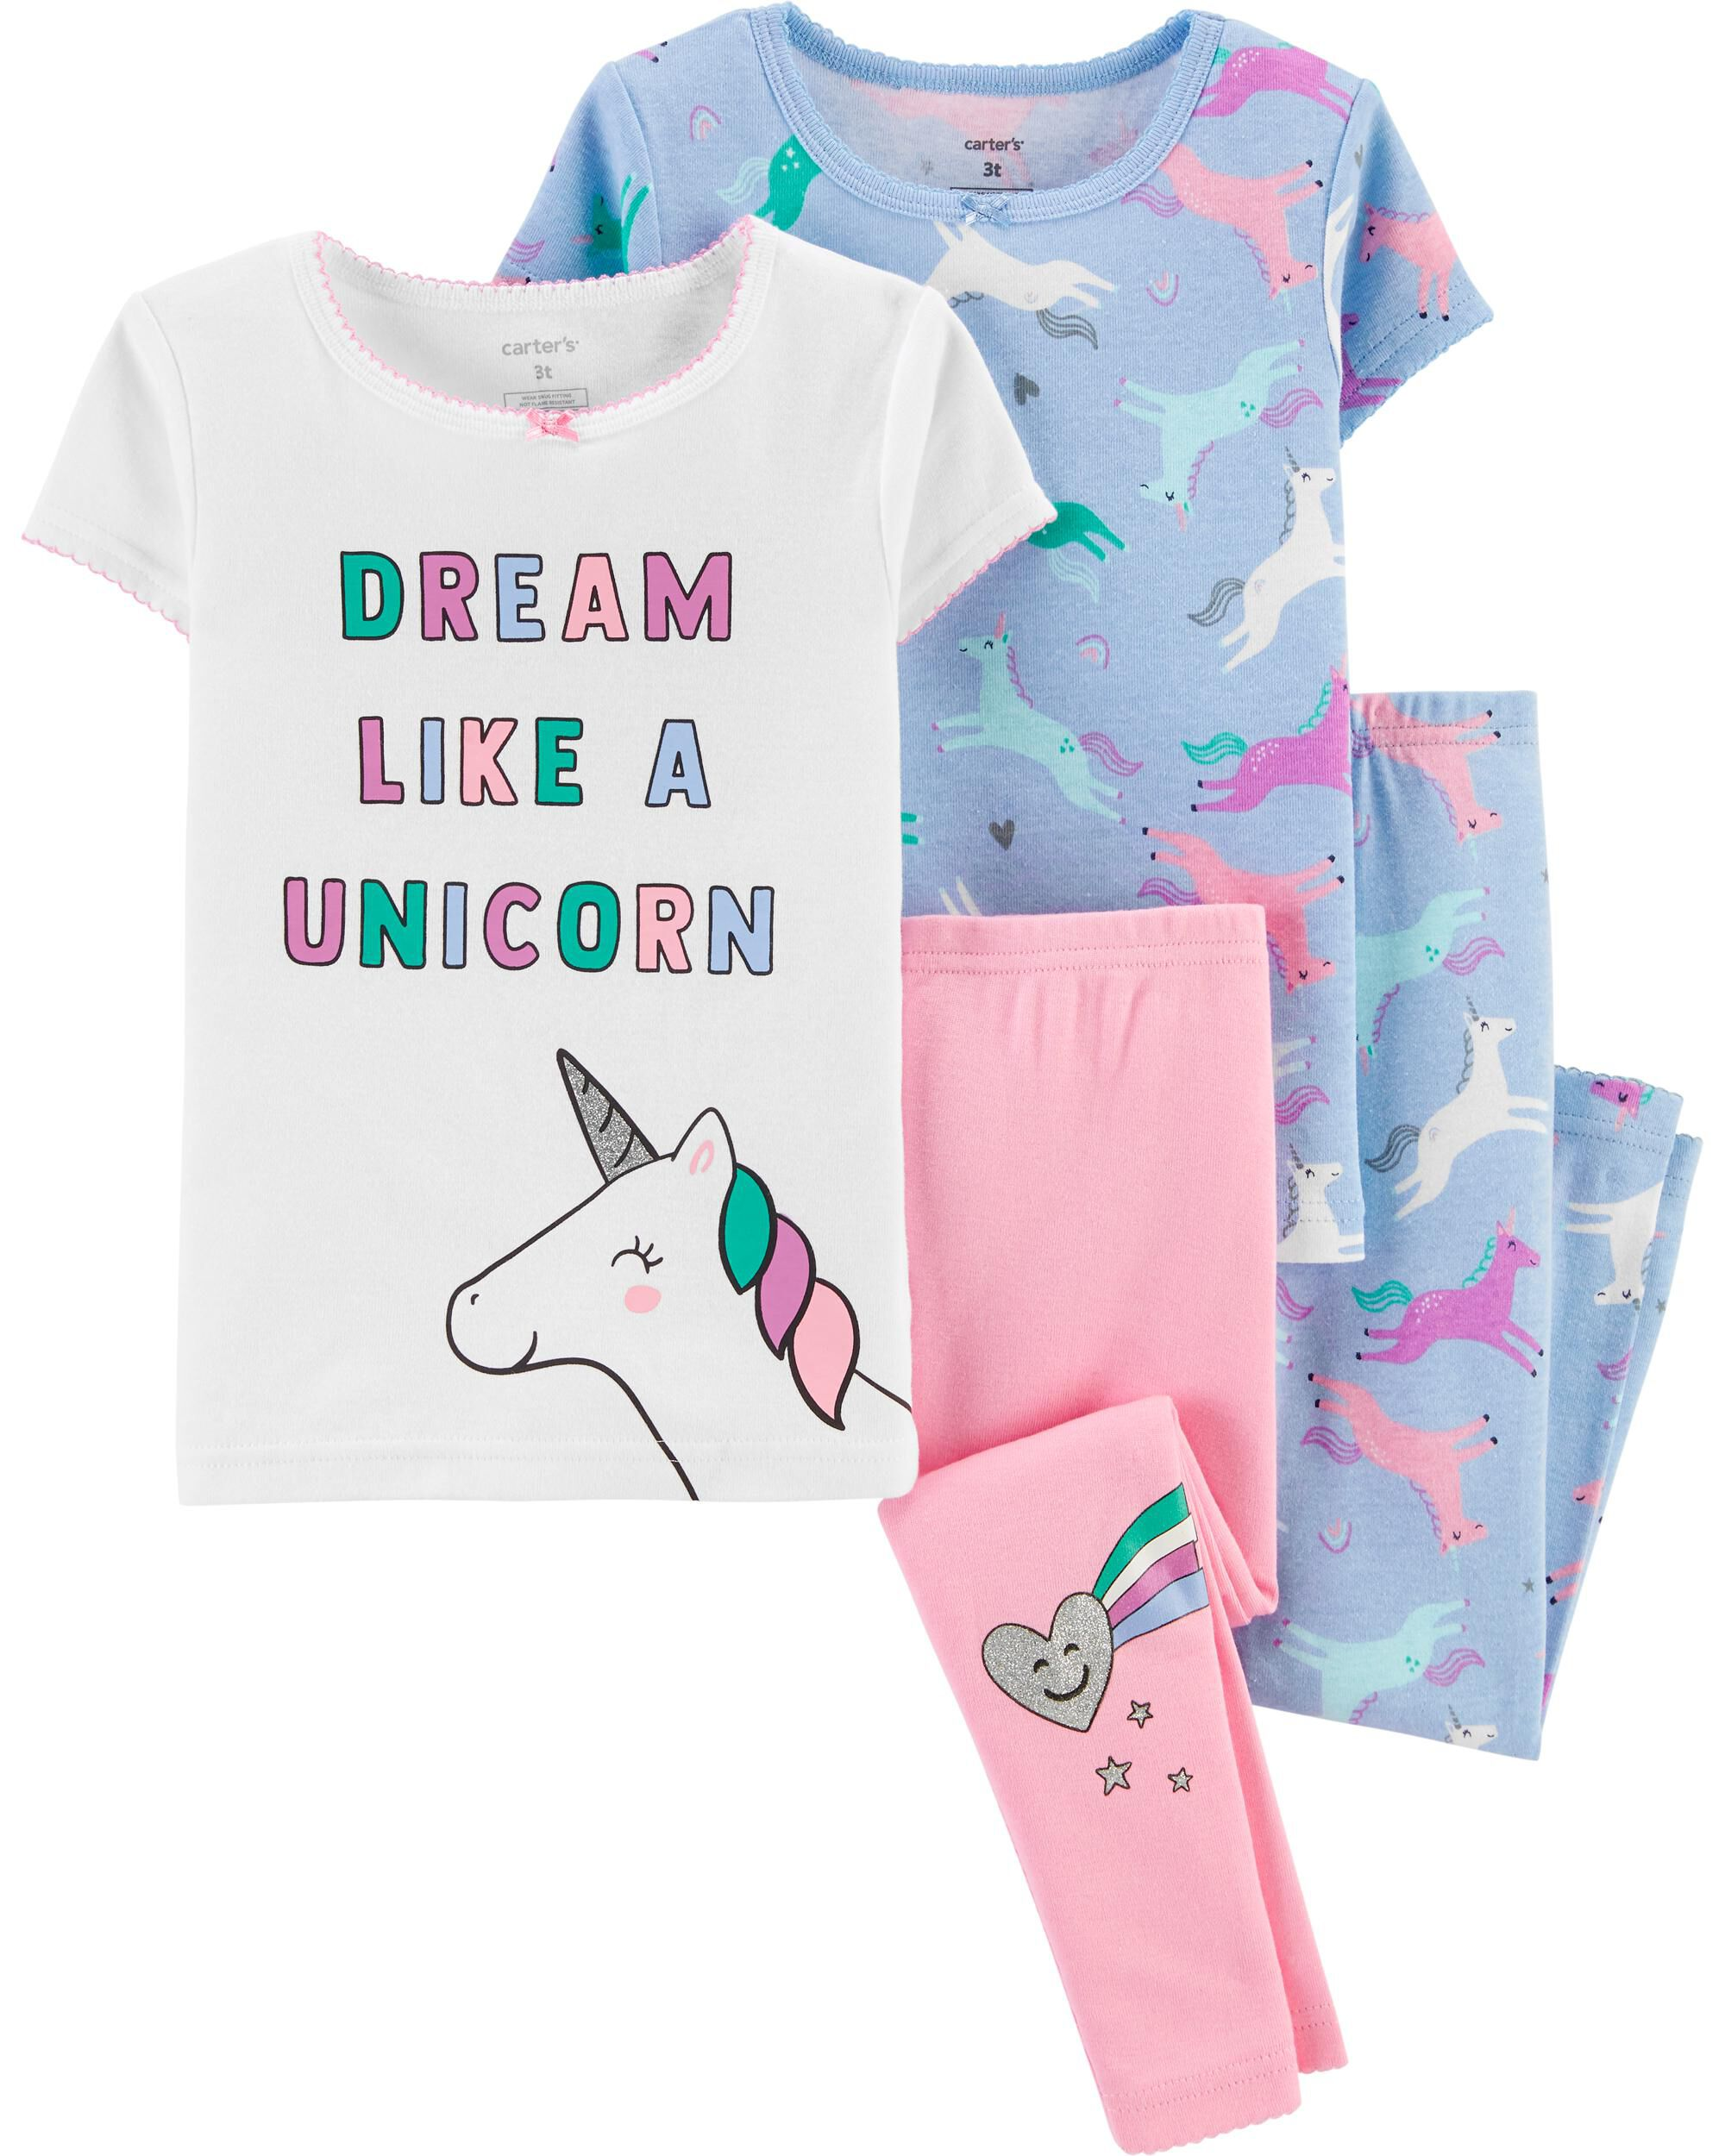 4-Piece Unicorn Snug Fit Cotton PJs